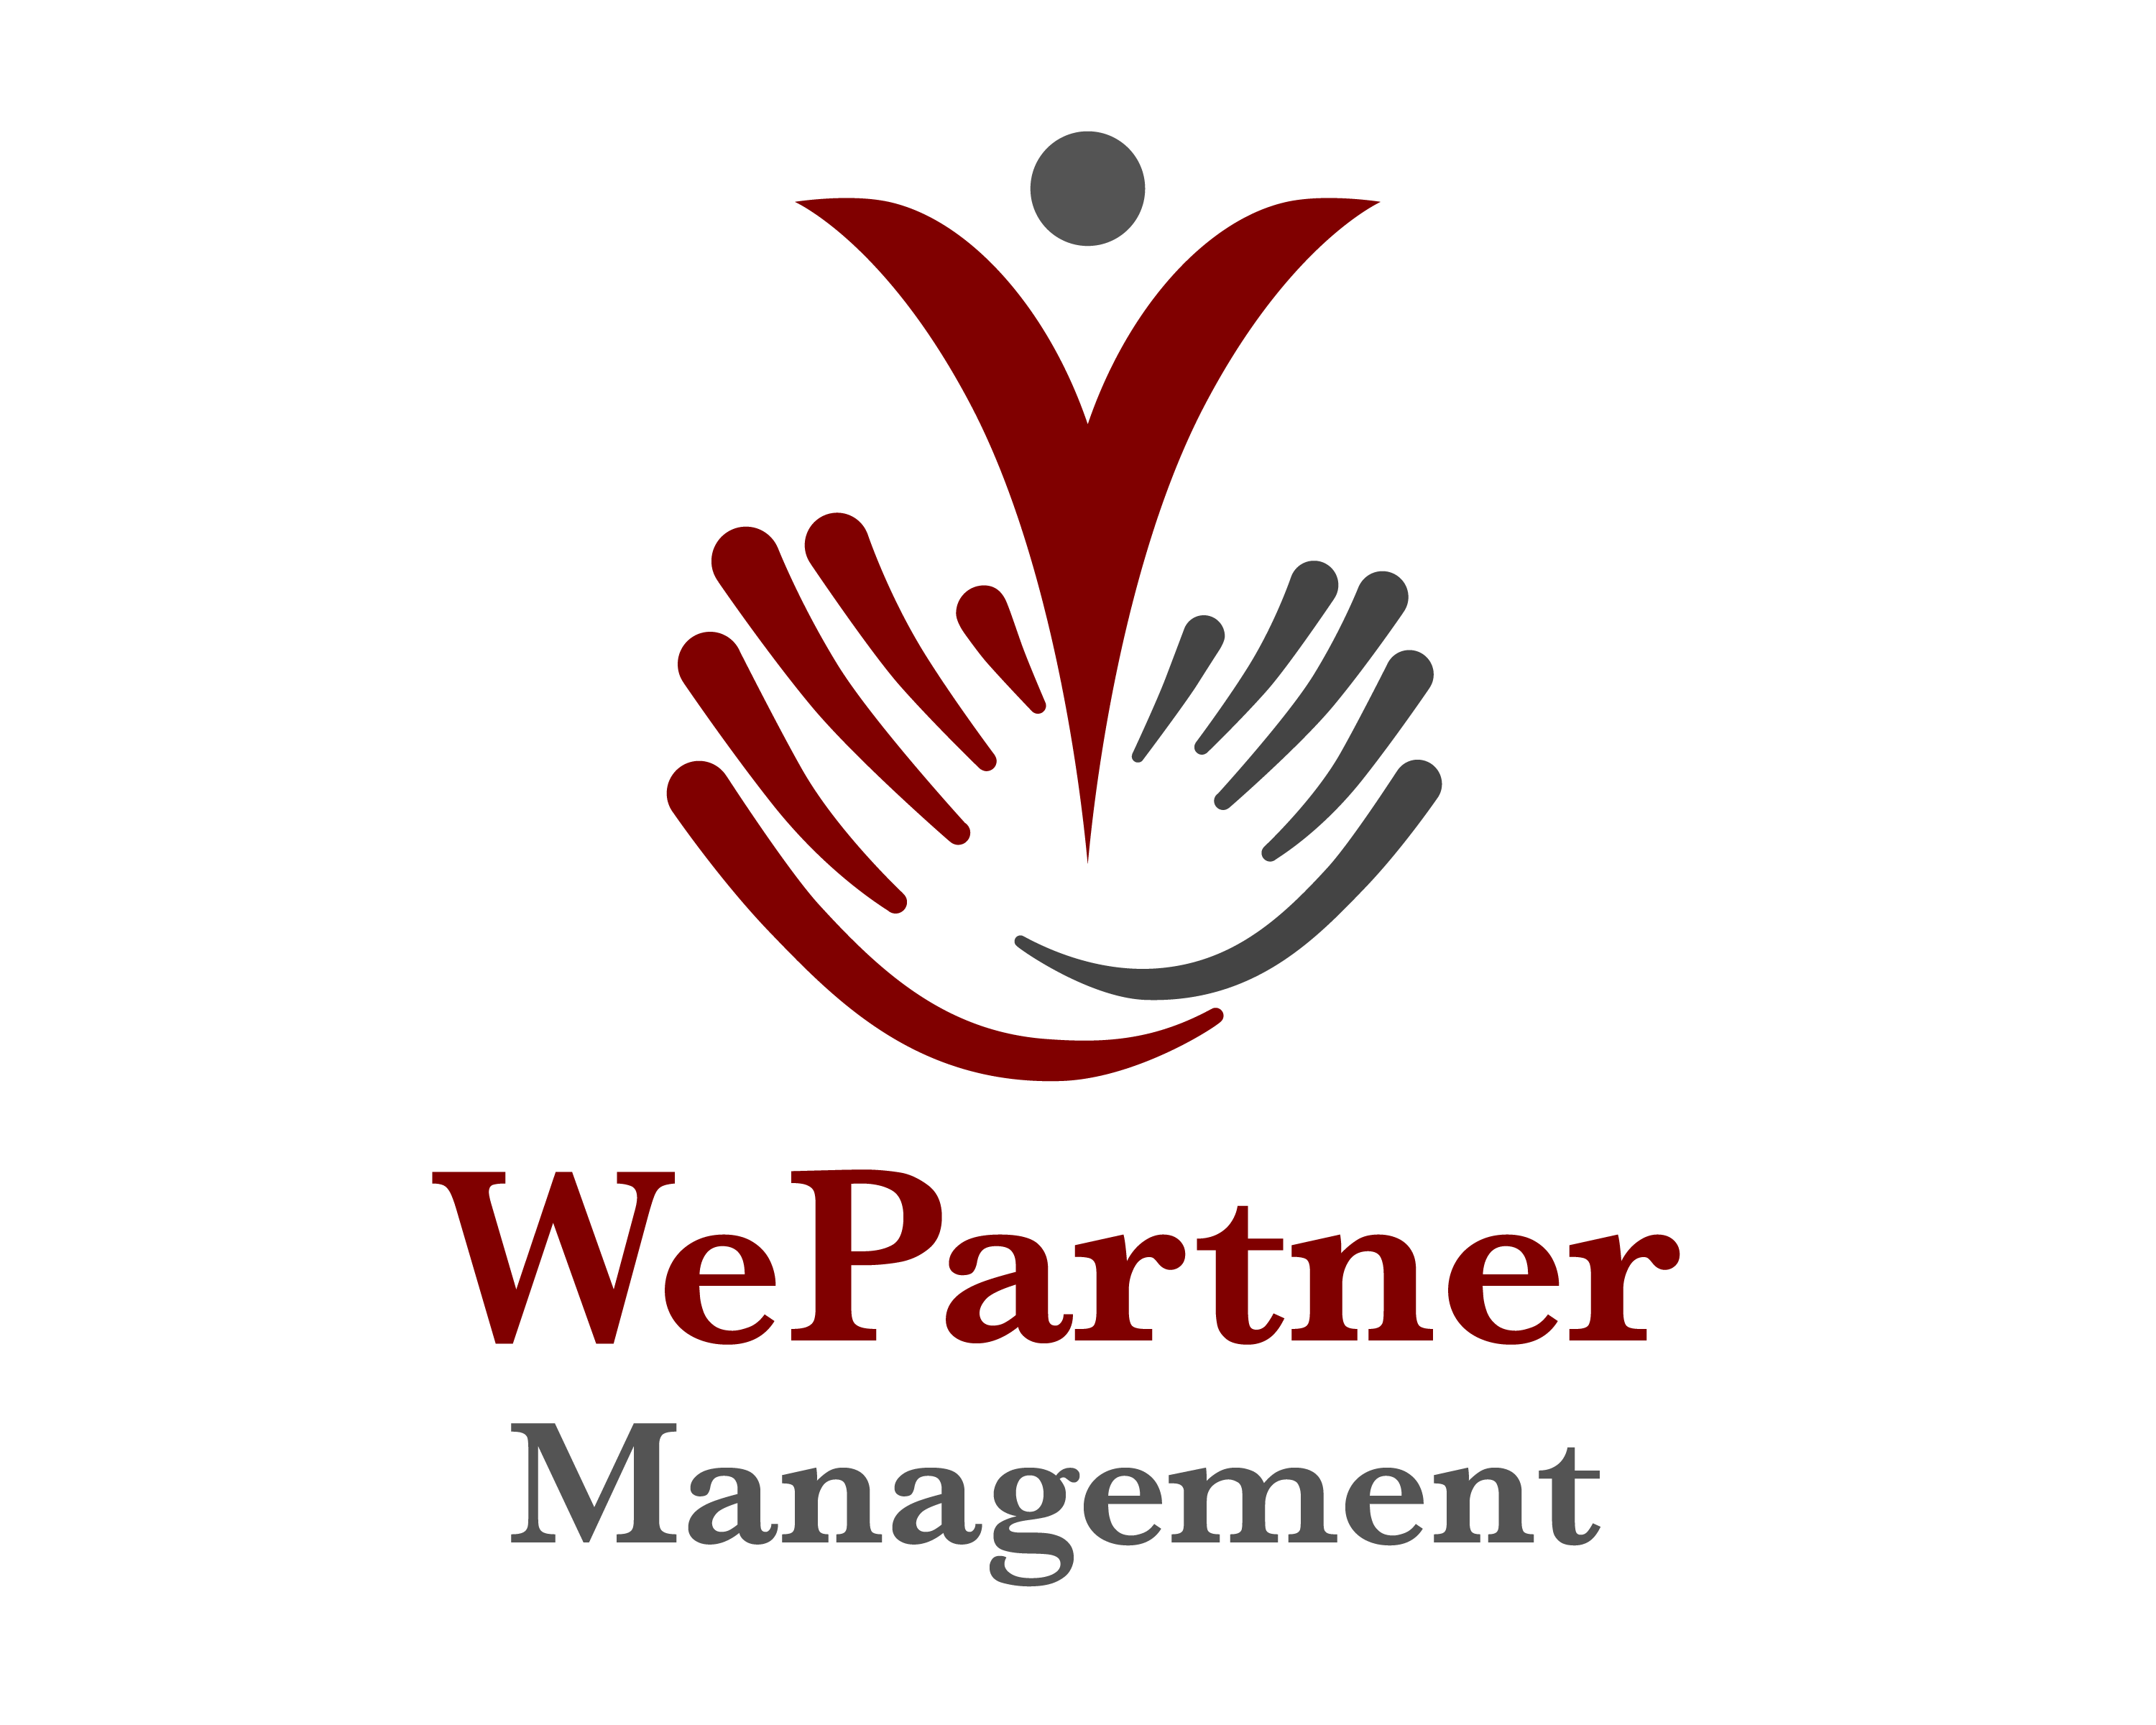 Wepartner